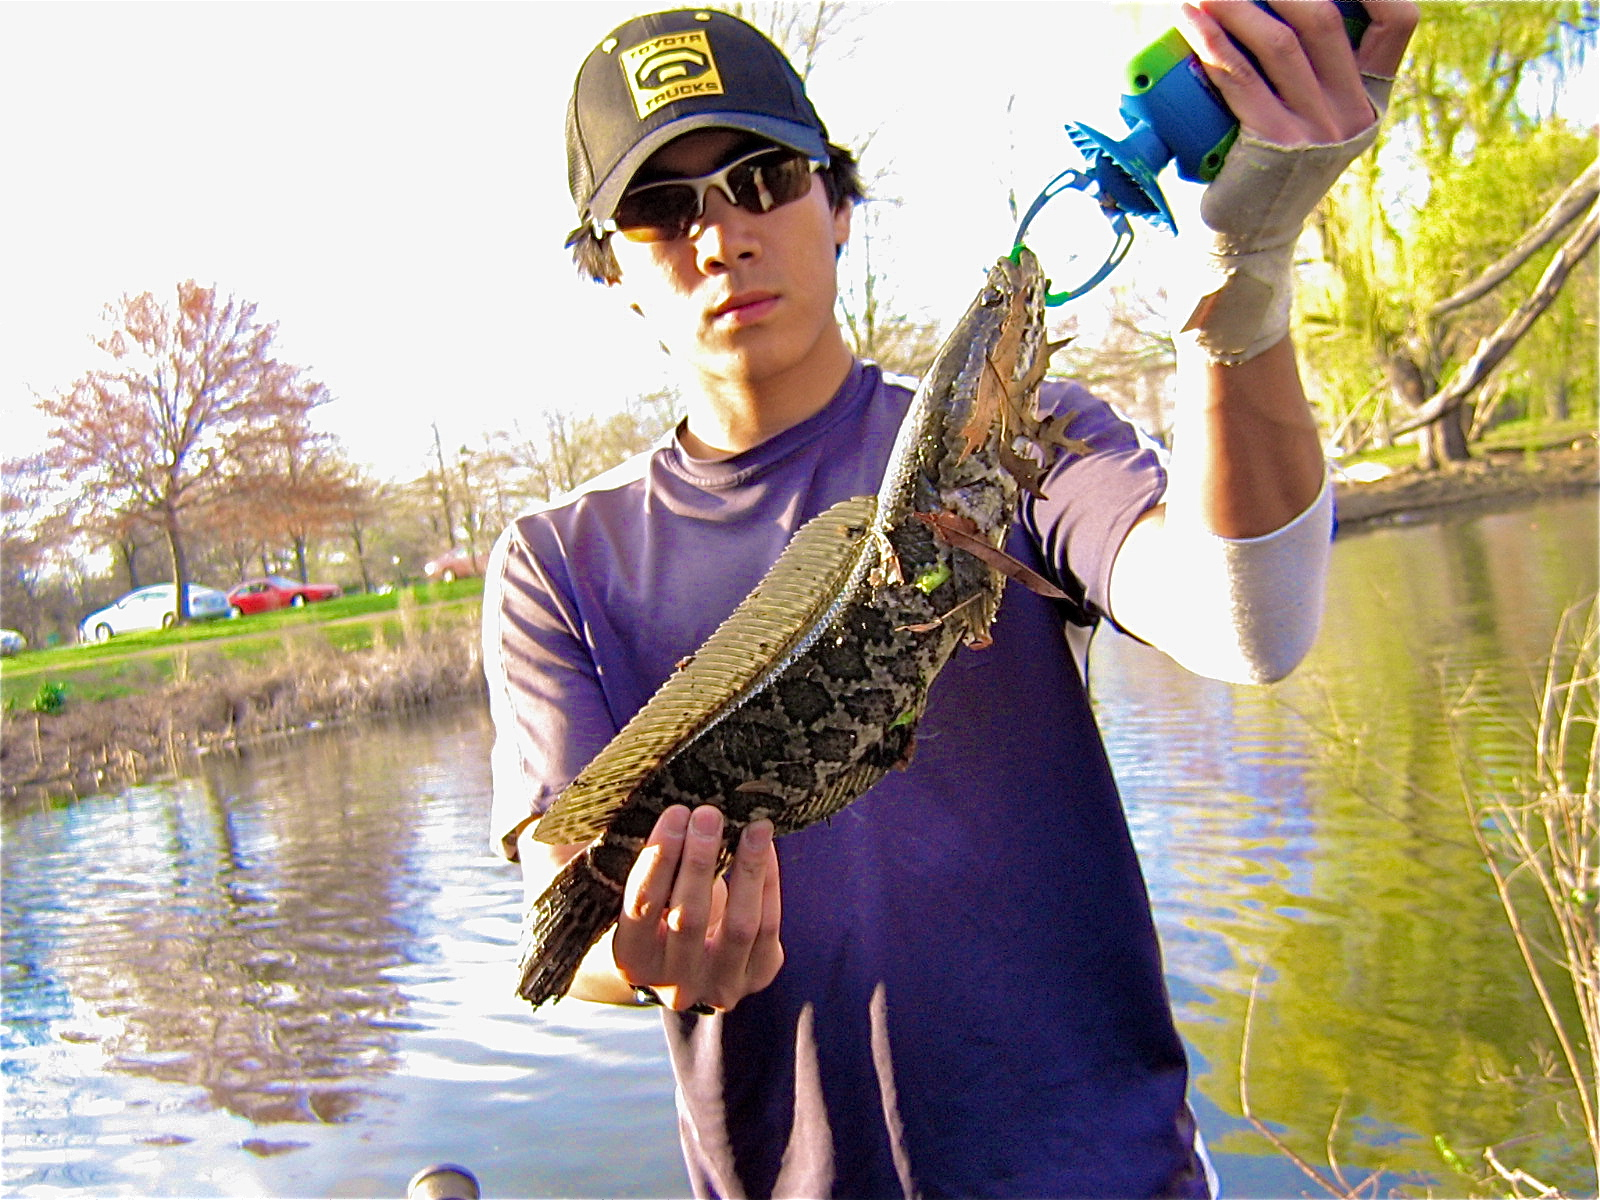 Extreme philly fishing season is open at the fdr park for Extreme philly fishing